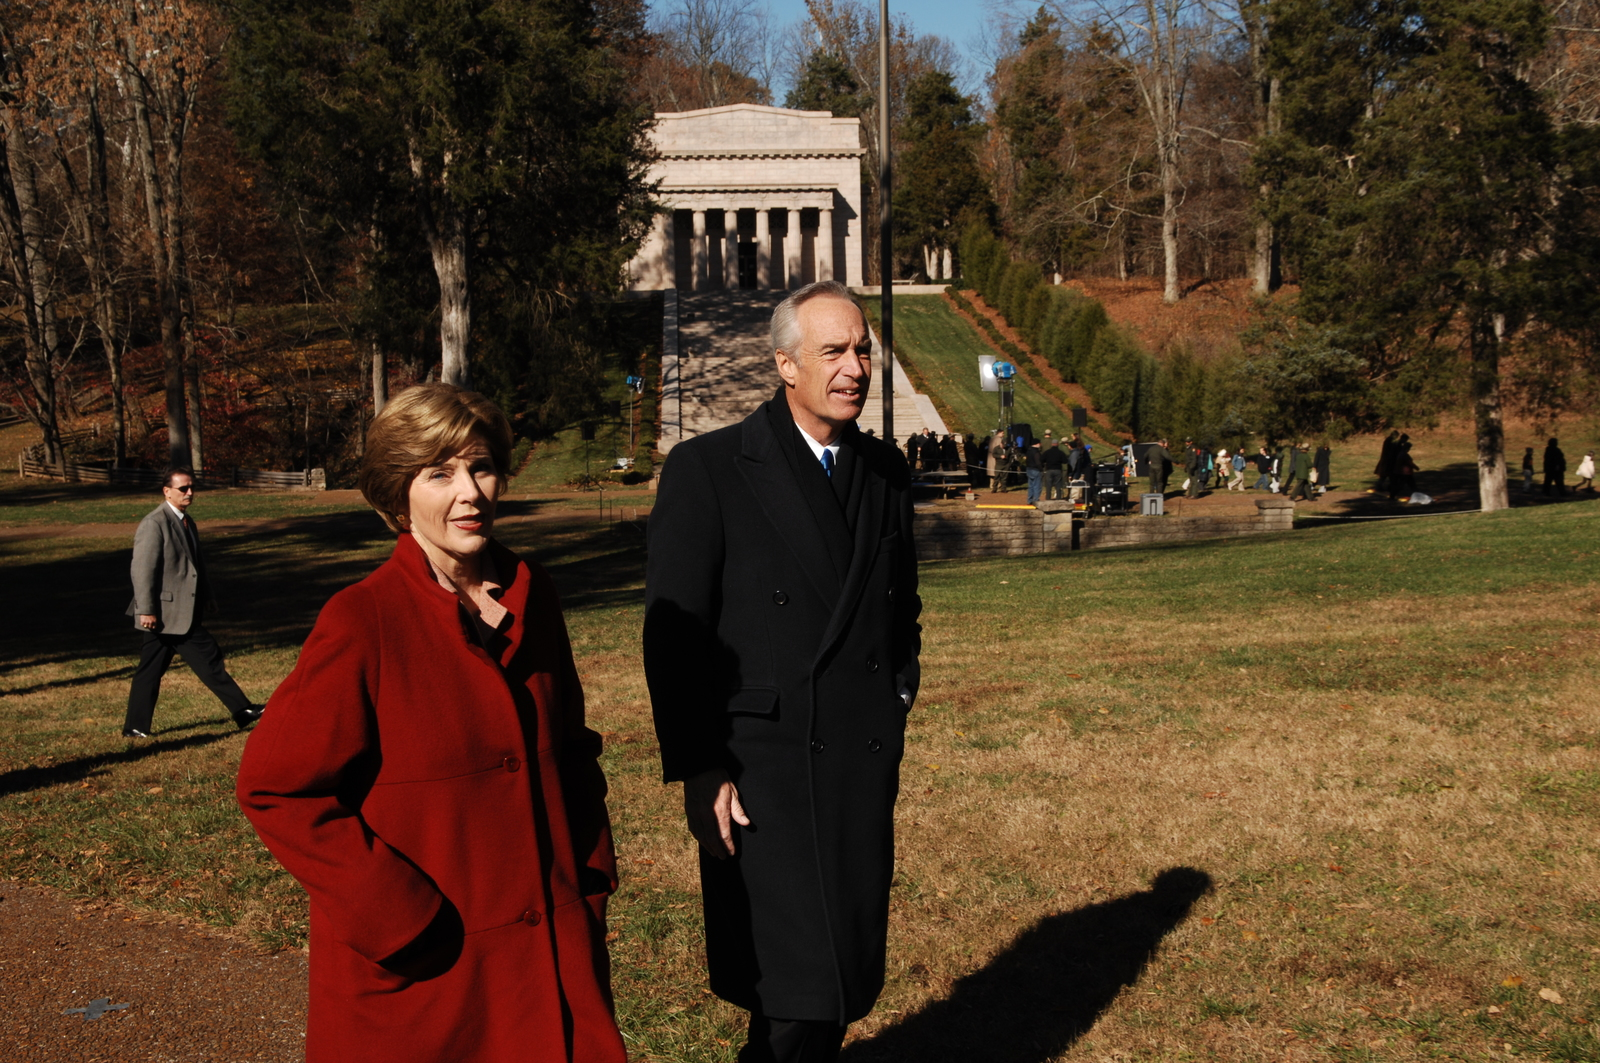 [Assignment: 48-DPA-11-18-08_SOI_K_FLOTUS] Visit of Secretary Dirk Kempthorne to the Abraham Lincoln Birthplace National Historic Site in Hodgenville, Kentucky, where he joined First Lady Laura Bush, [Historic Site Superintendent Keith Pruitt, and Libby O'Connell, Chief Historian of A and E Television's History Channel, for tours, remarks, interactions with National Park Service staff and visitors] [48-DPA-11-18-08_SOI_K_FLOTUS_IOD_8241.JPG]